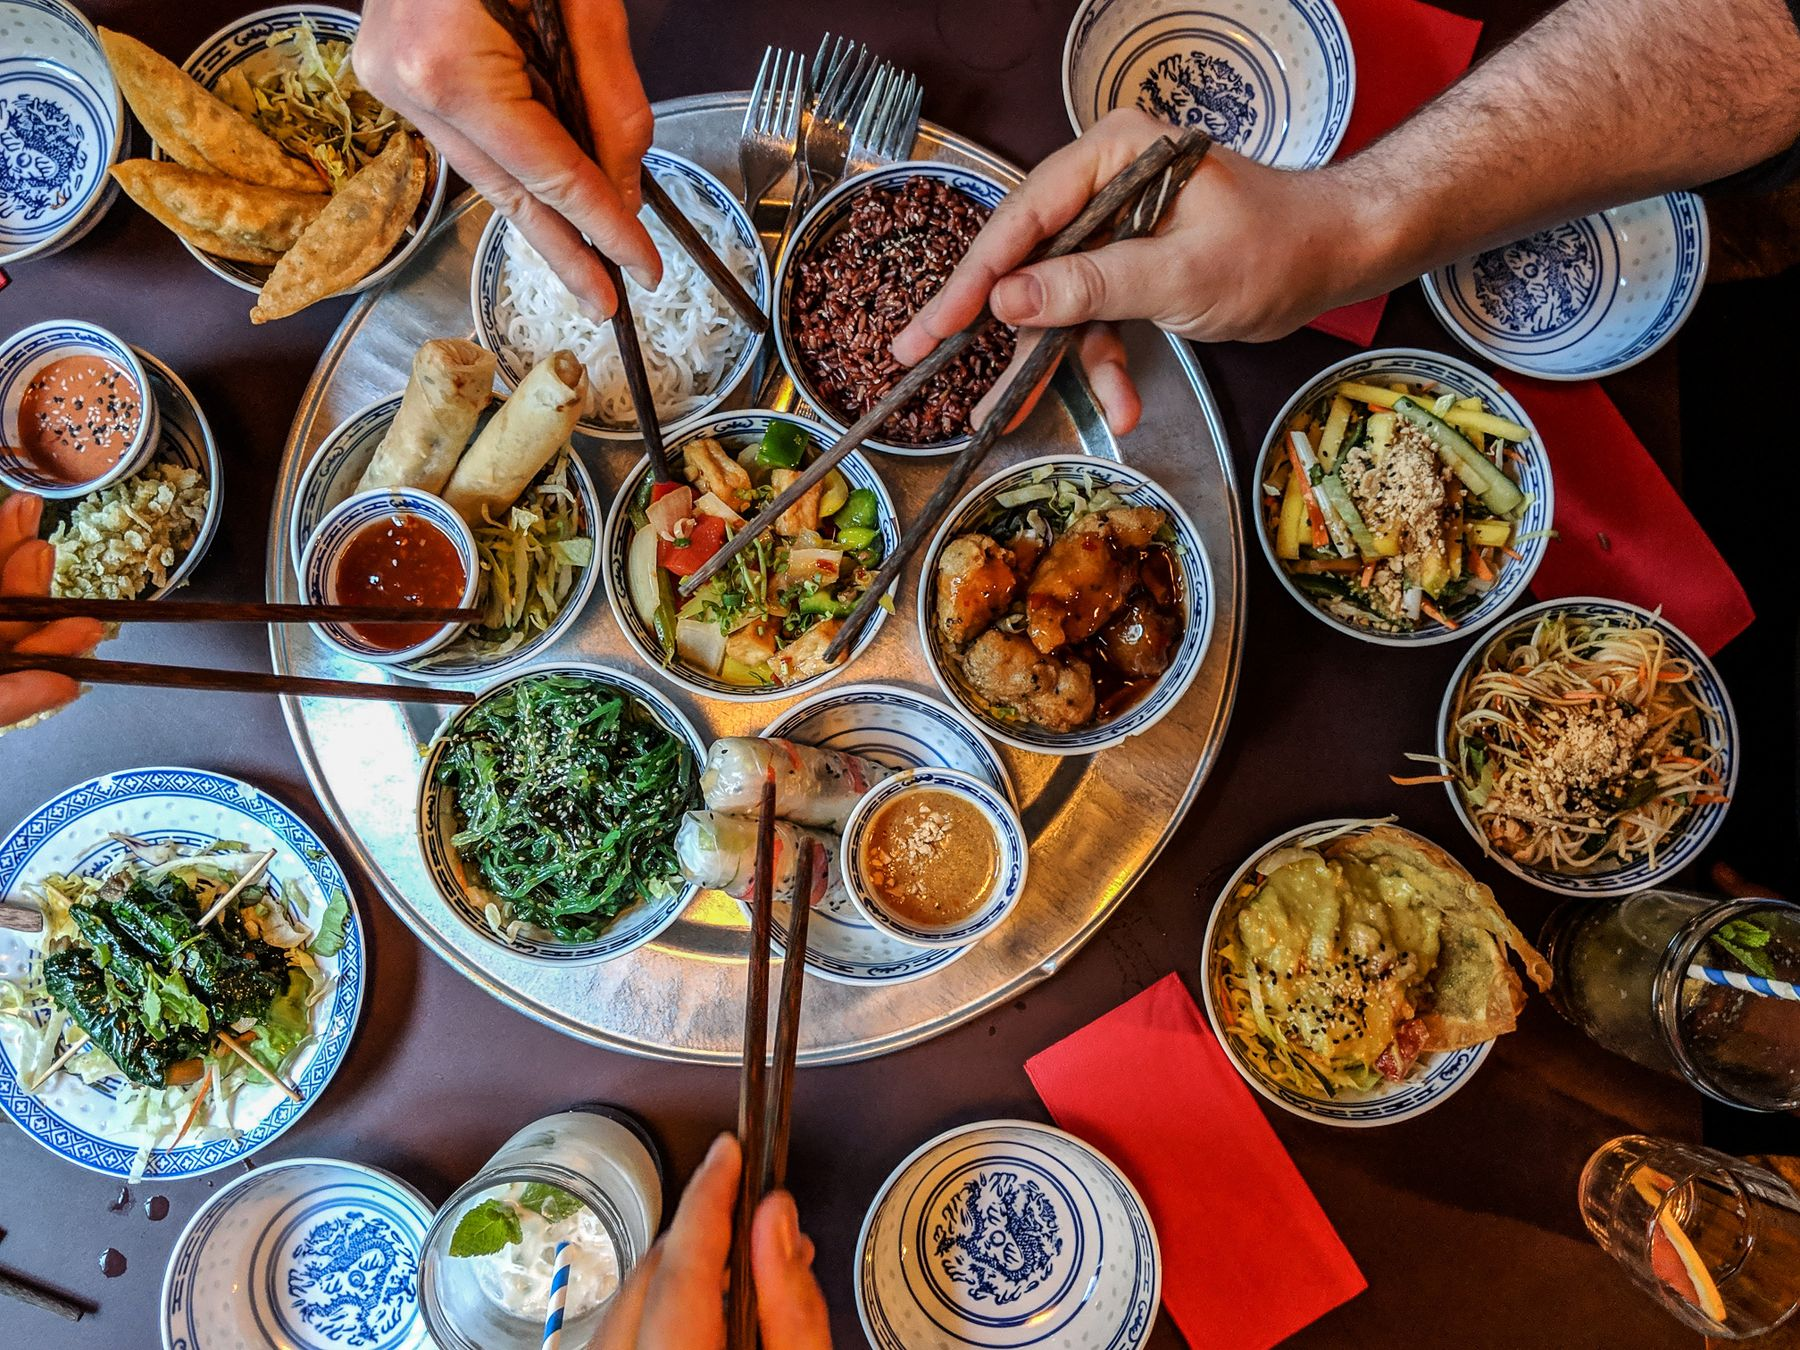 Diners dig into a mixed platter of Chinese food with their chopsticks.